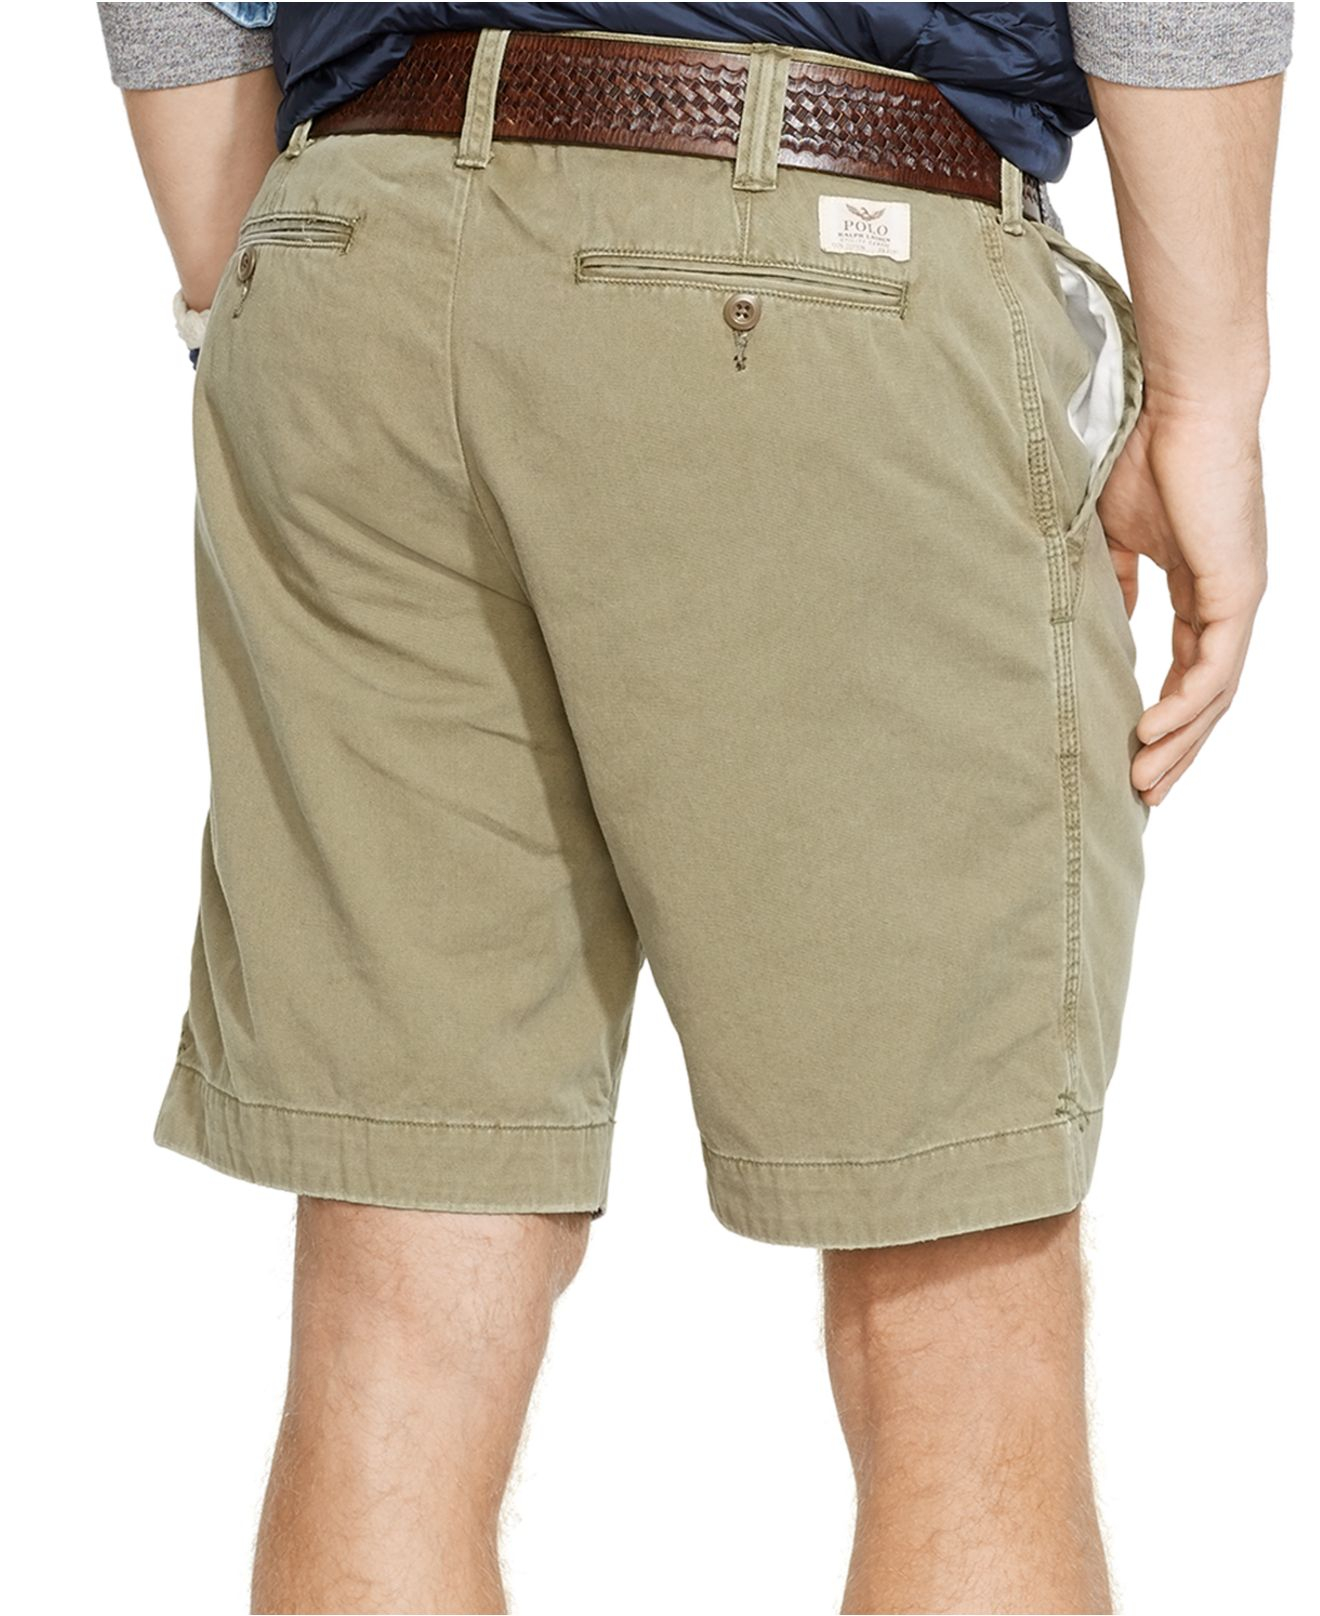 94c4faca1 Polo Ralph Lauren Relaxed-fit Twill Surplus Short in Green for Men ...